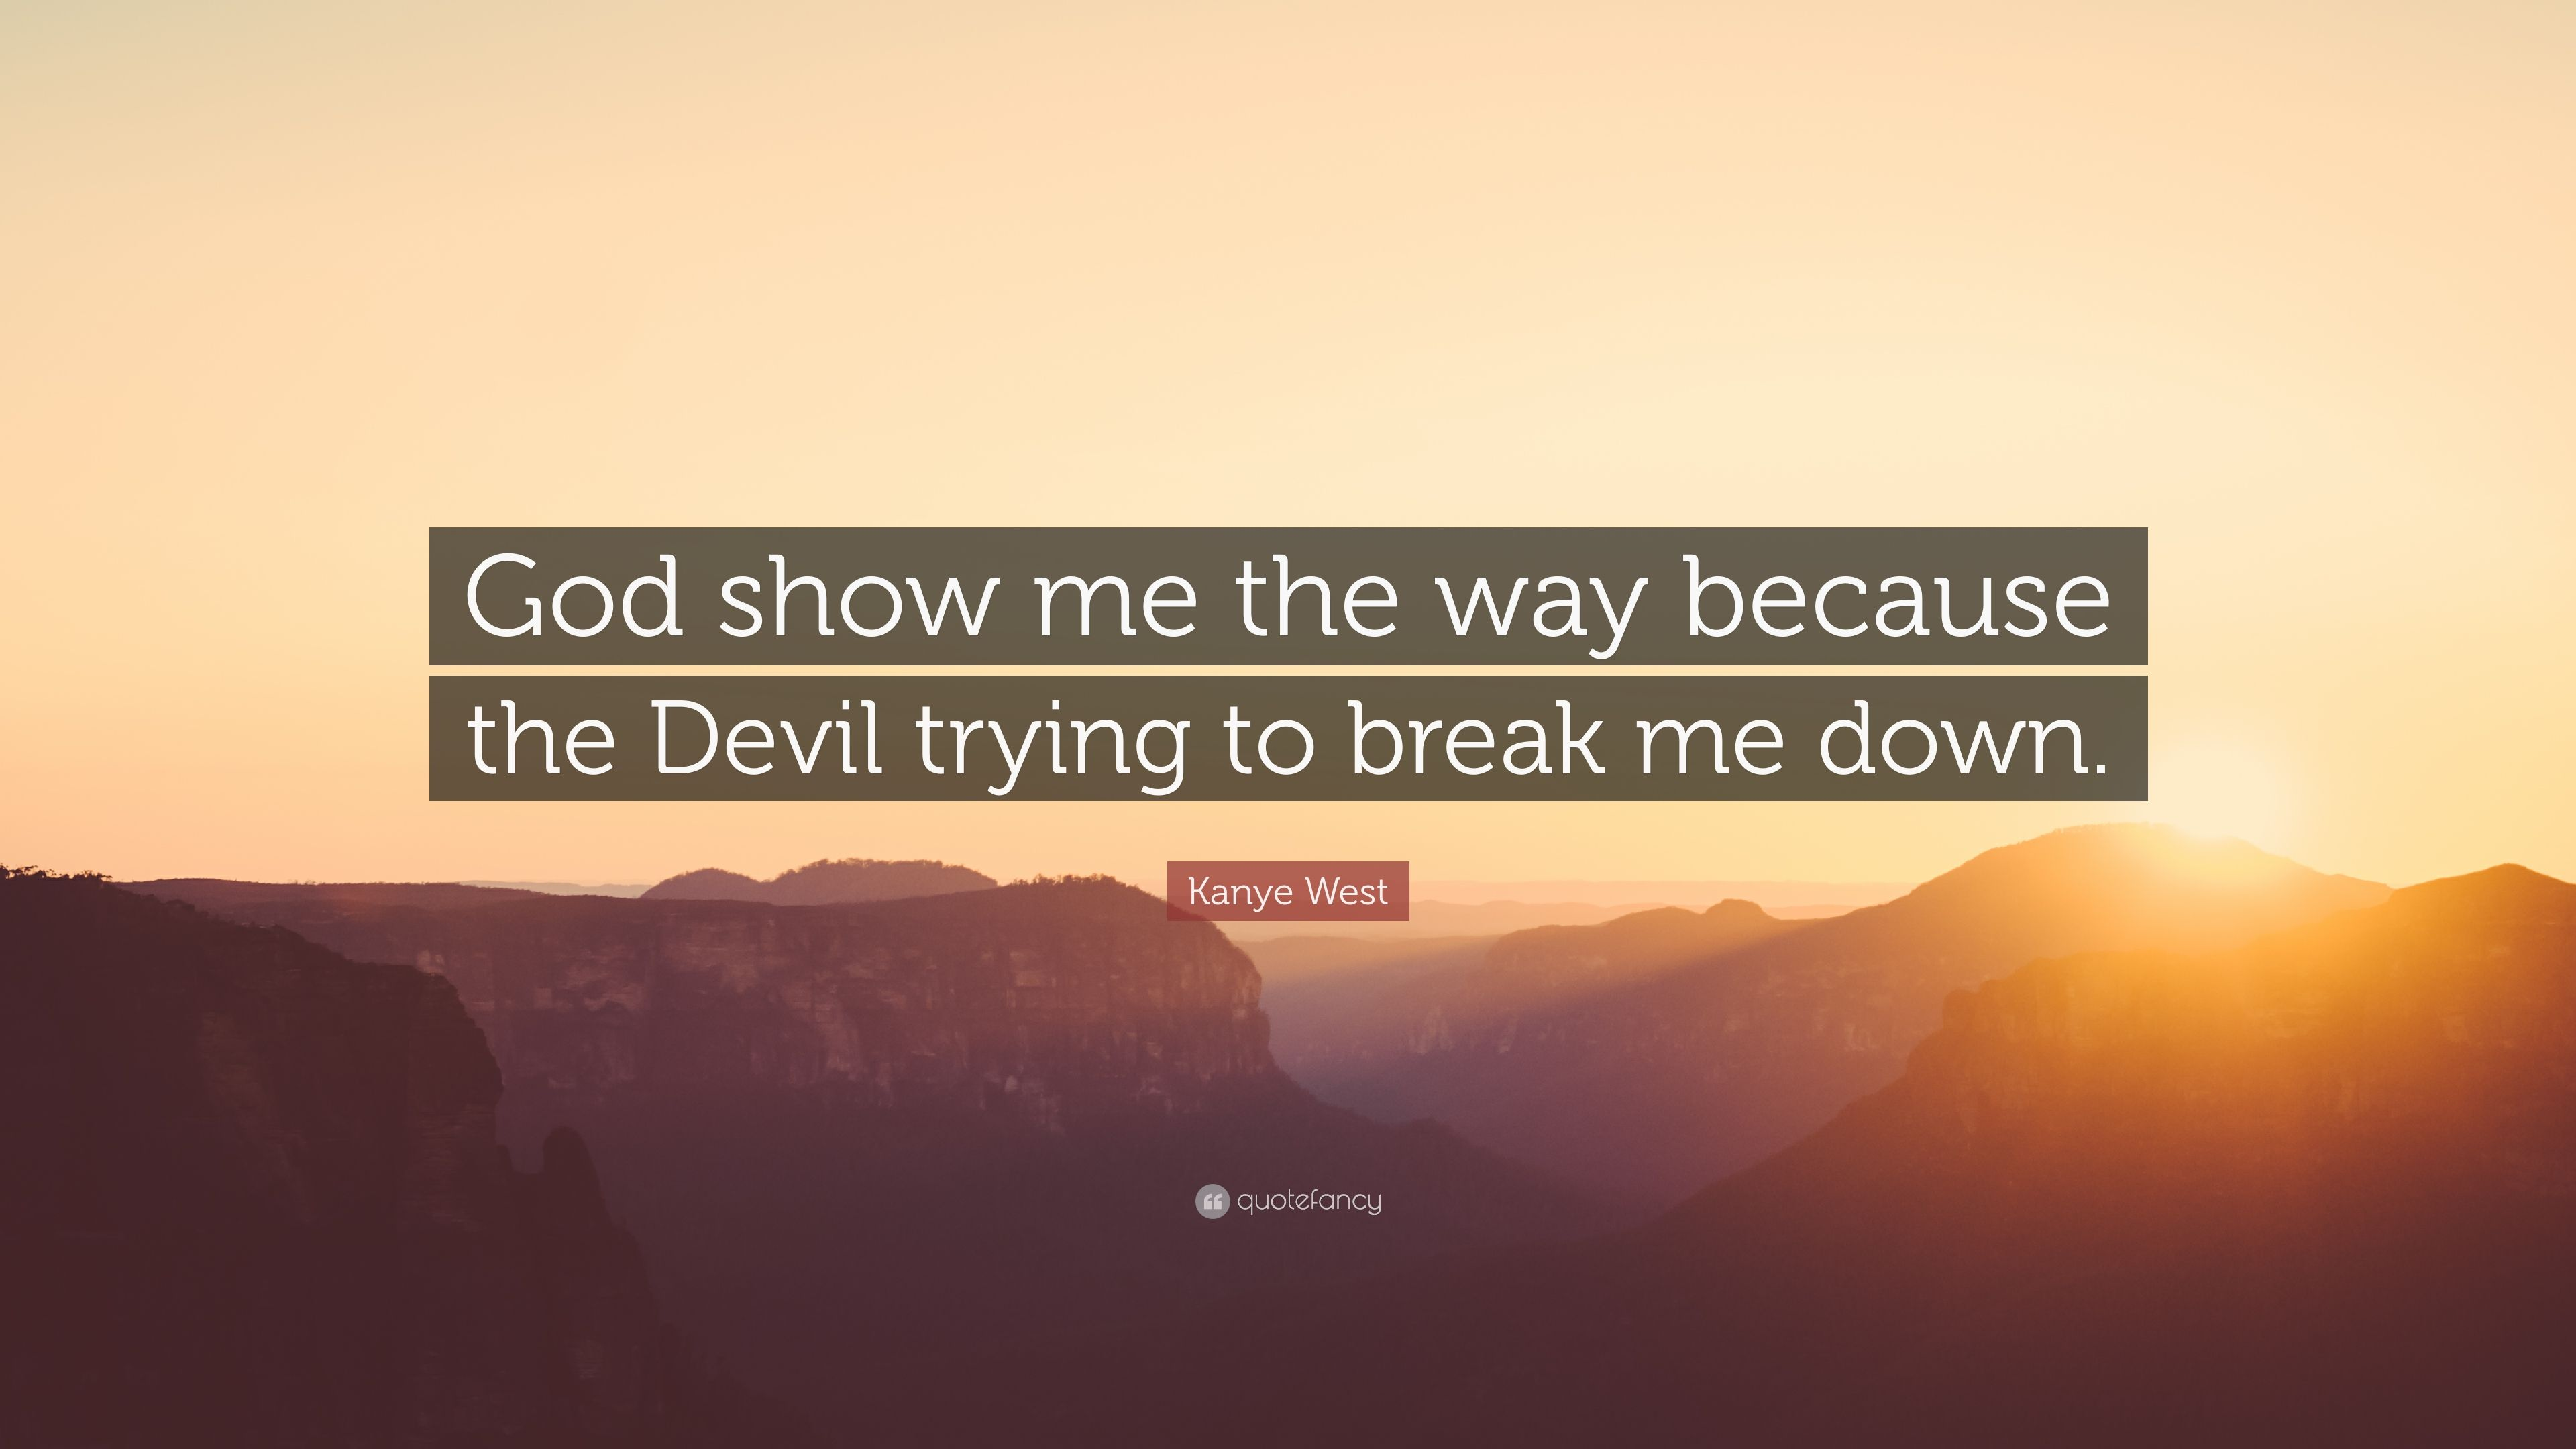 How to cause the devil 5